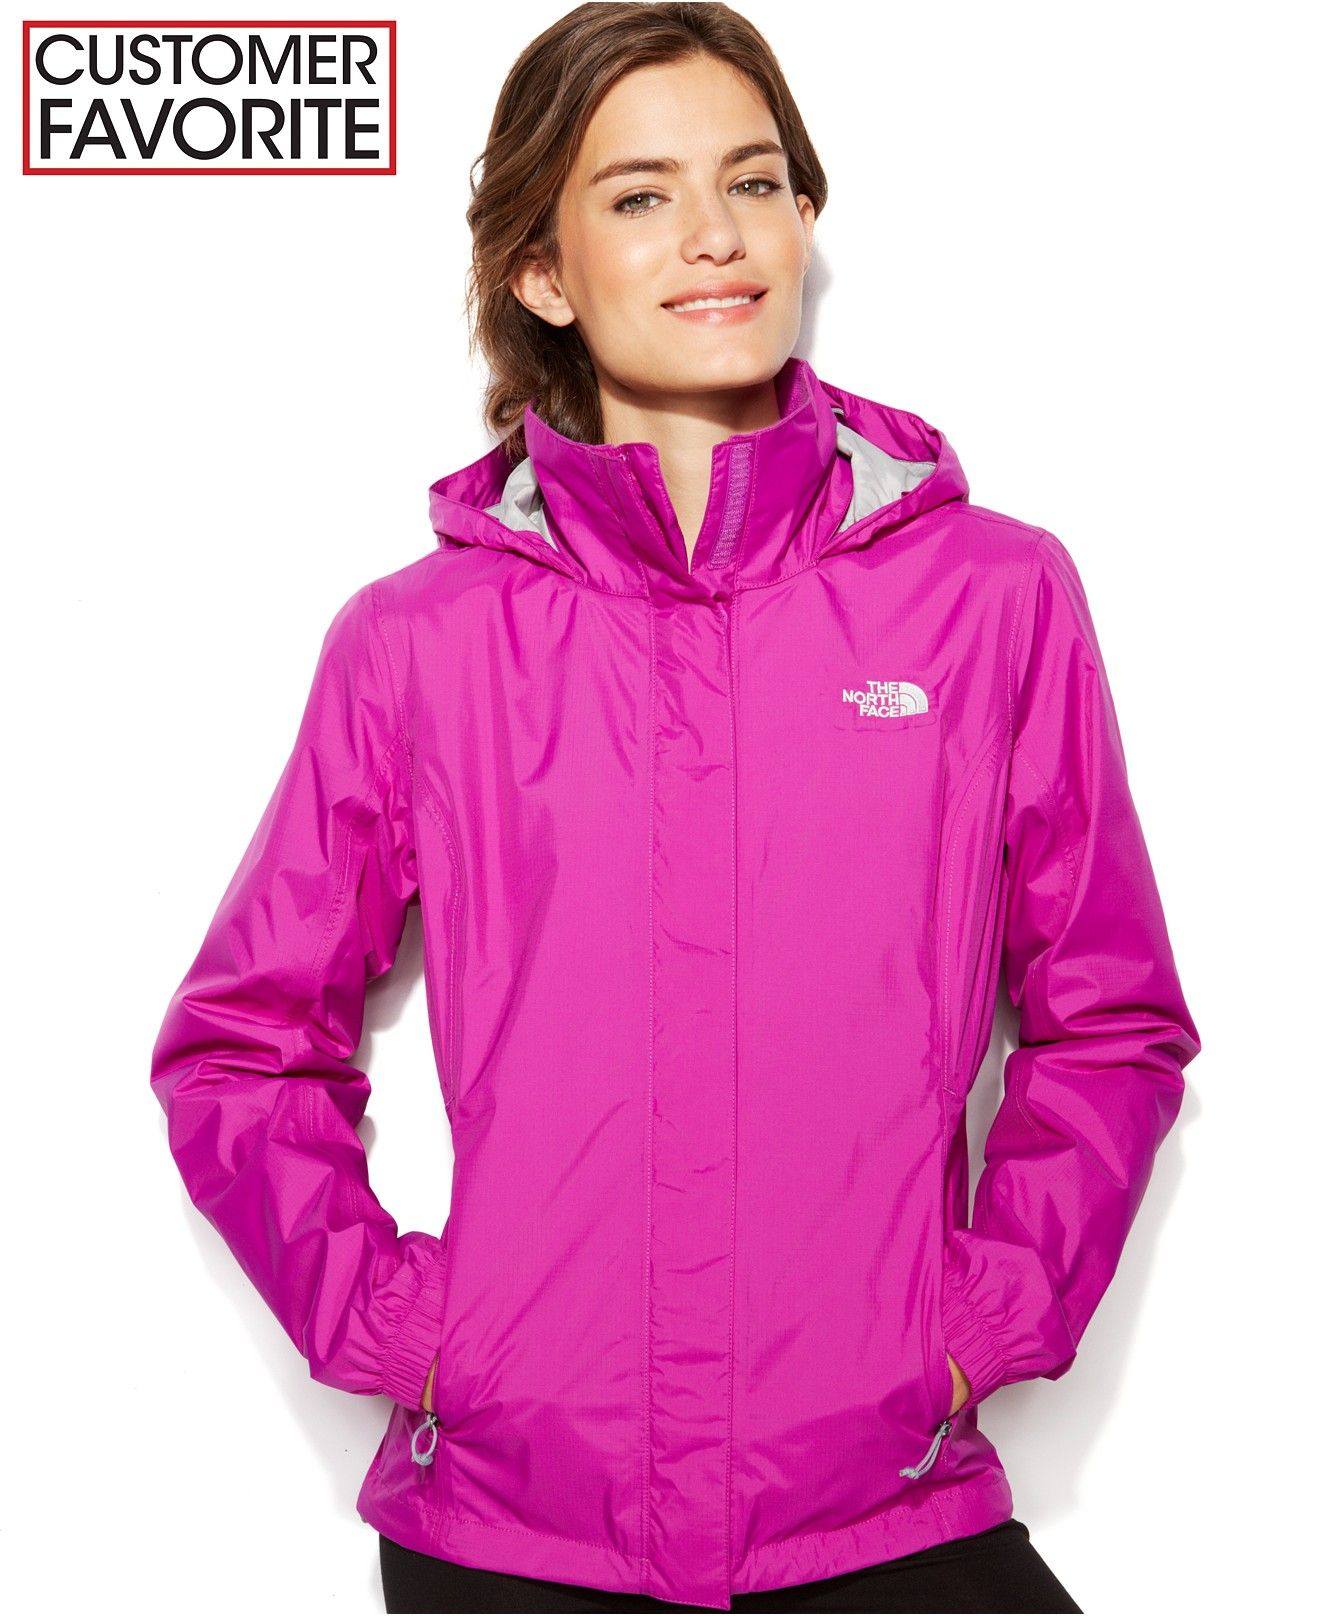 The North Face Jacket Resolve Zip Up Waterproof Jackets Blazers Women Macy S North Face Jacket Blazer Jackets For Women Jackets [ 1616 x 1320 Pixel ]